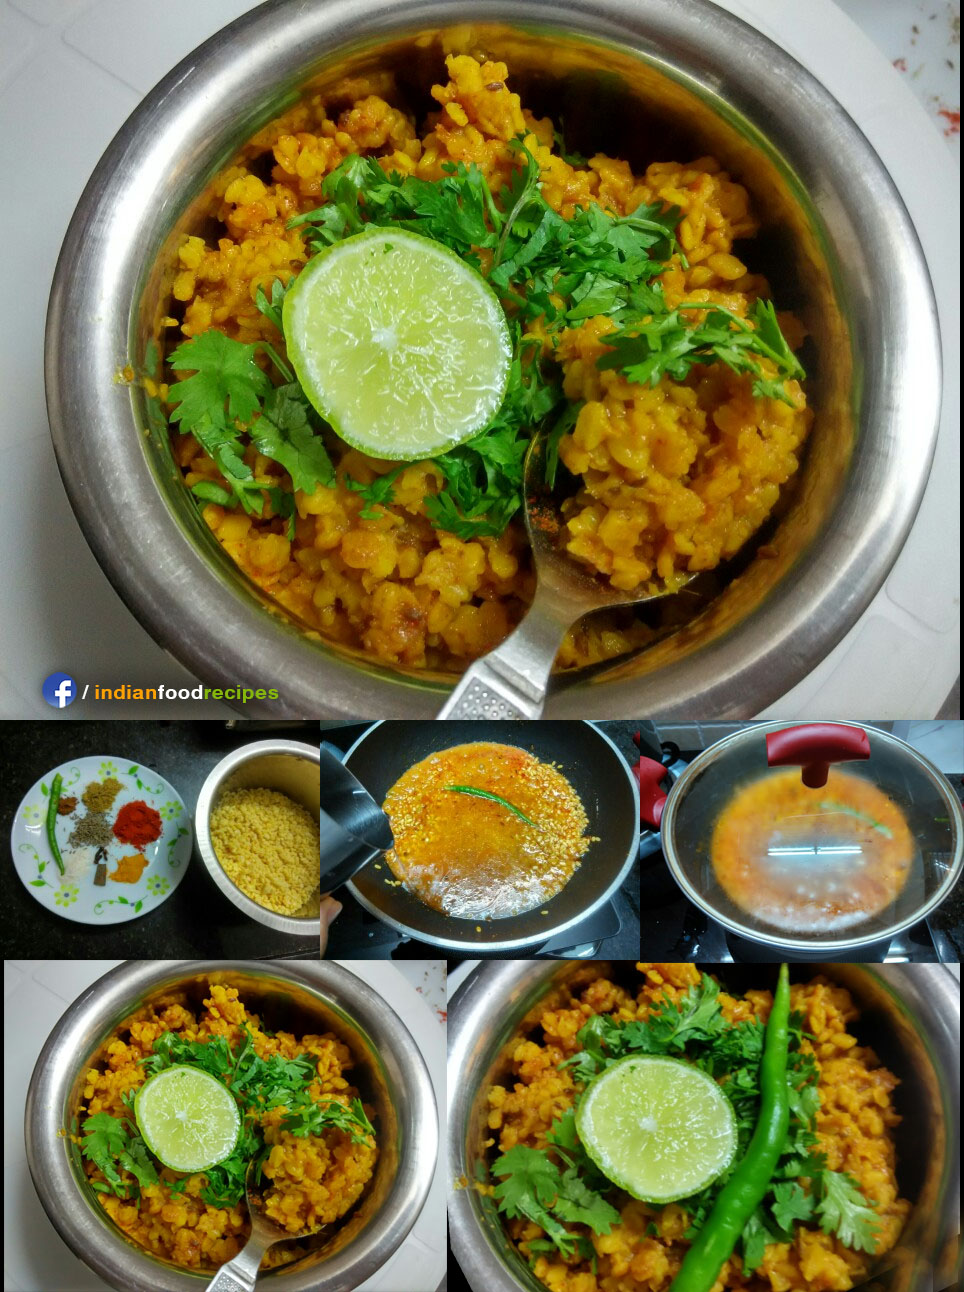 Green gram vegetable recipe step by step pictures